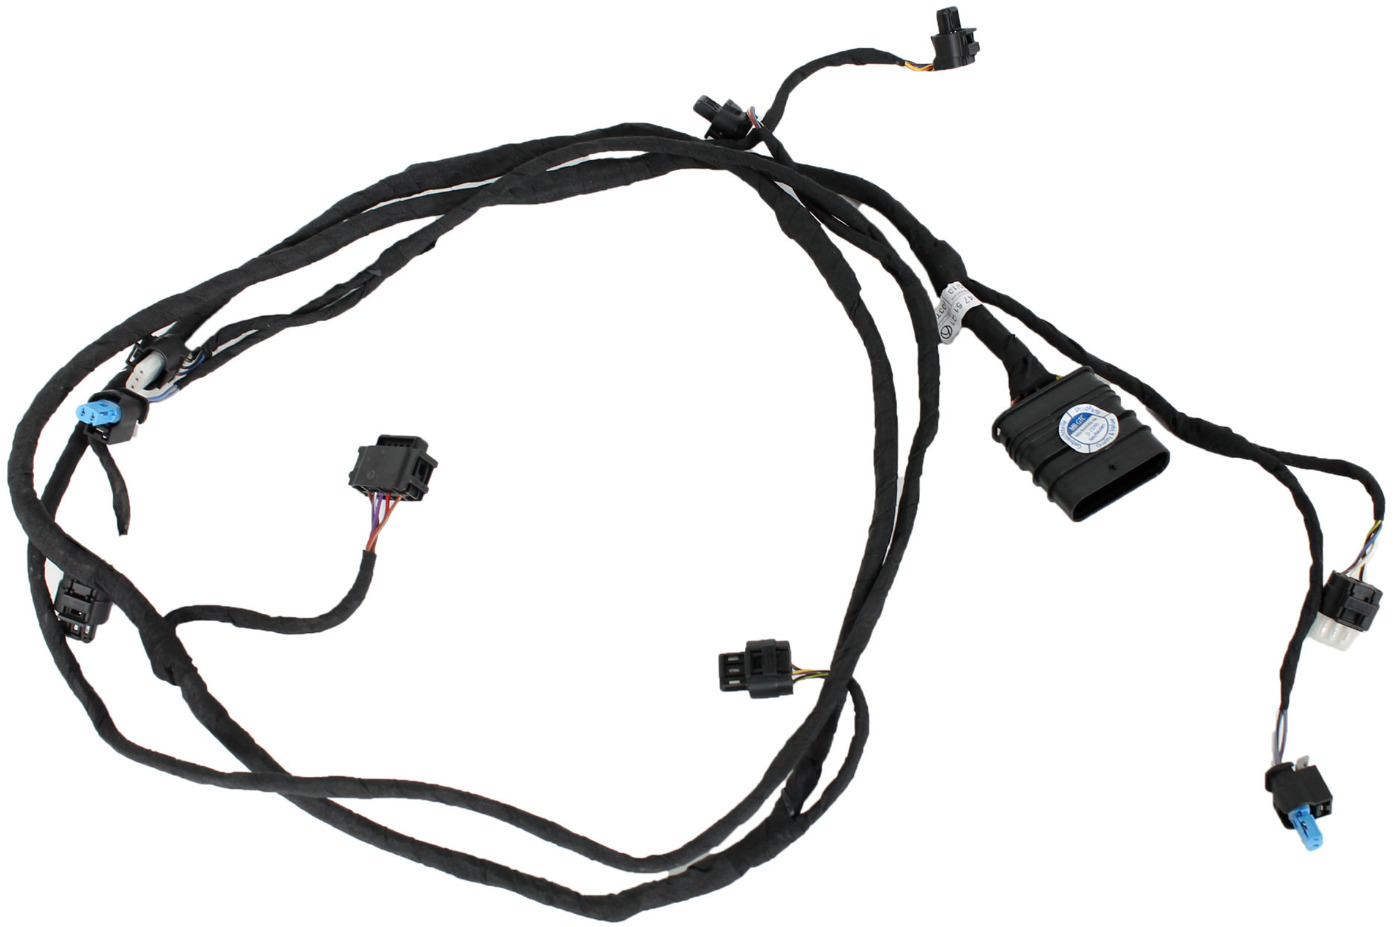 New Mb E W212 Front Bumper Parktronic Wiring Harness